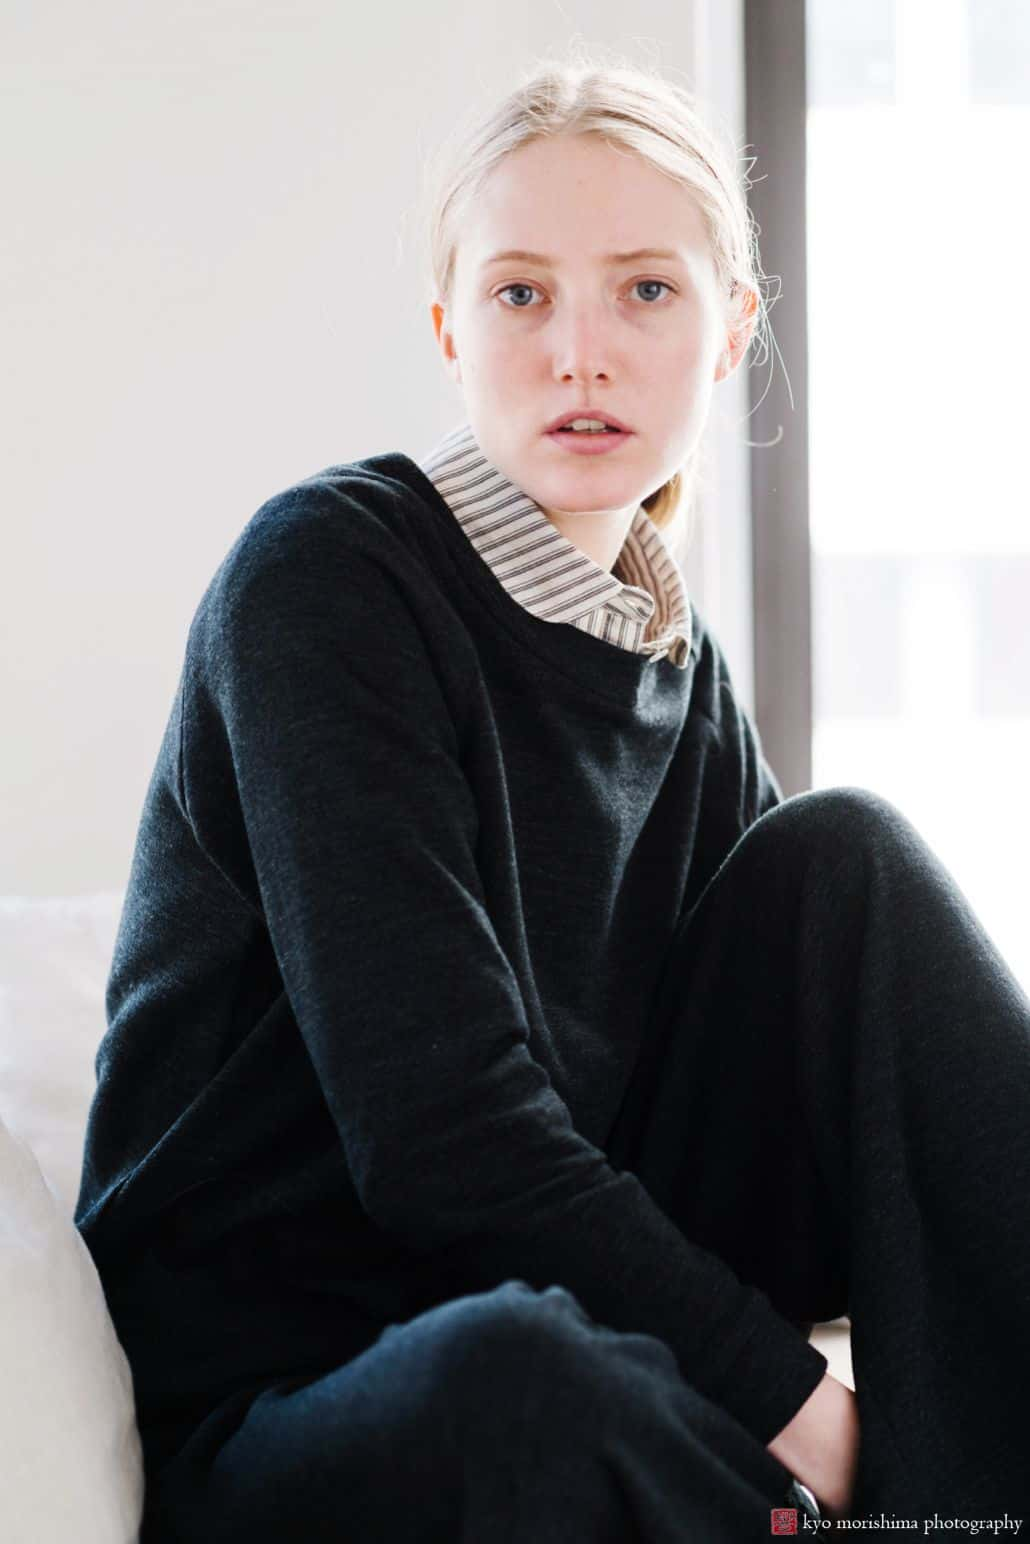 Lookbook photography for Princeton fashion label Semi Gloss NYC winter 2018 collection: striped shirt with collar and oversized black sweater, loose-fitting dark pants